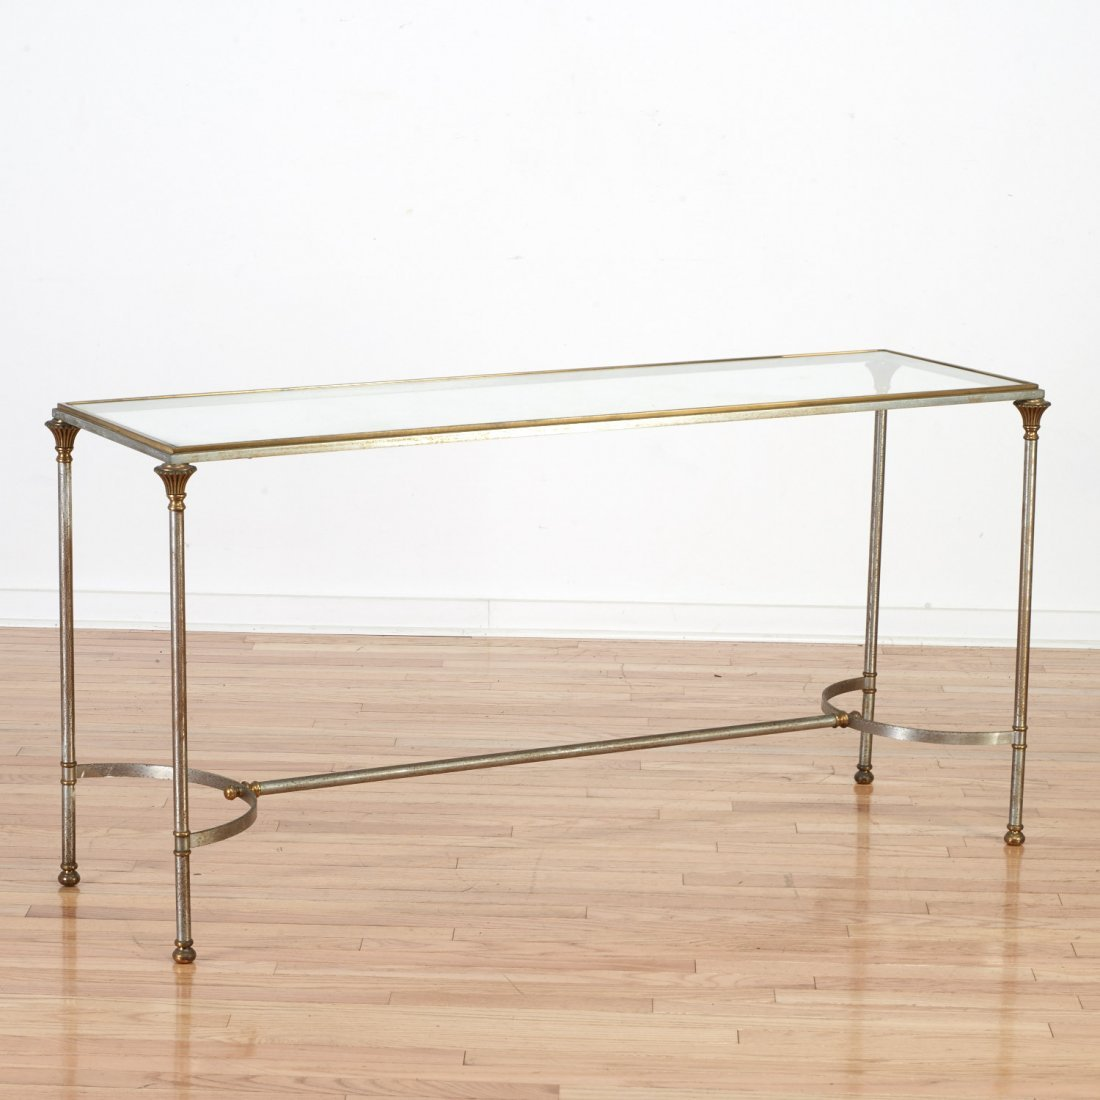 Maison Jansen style steel and brass console